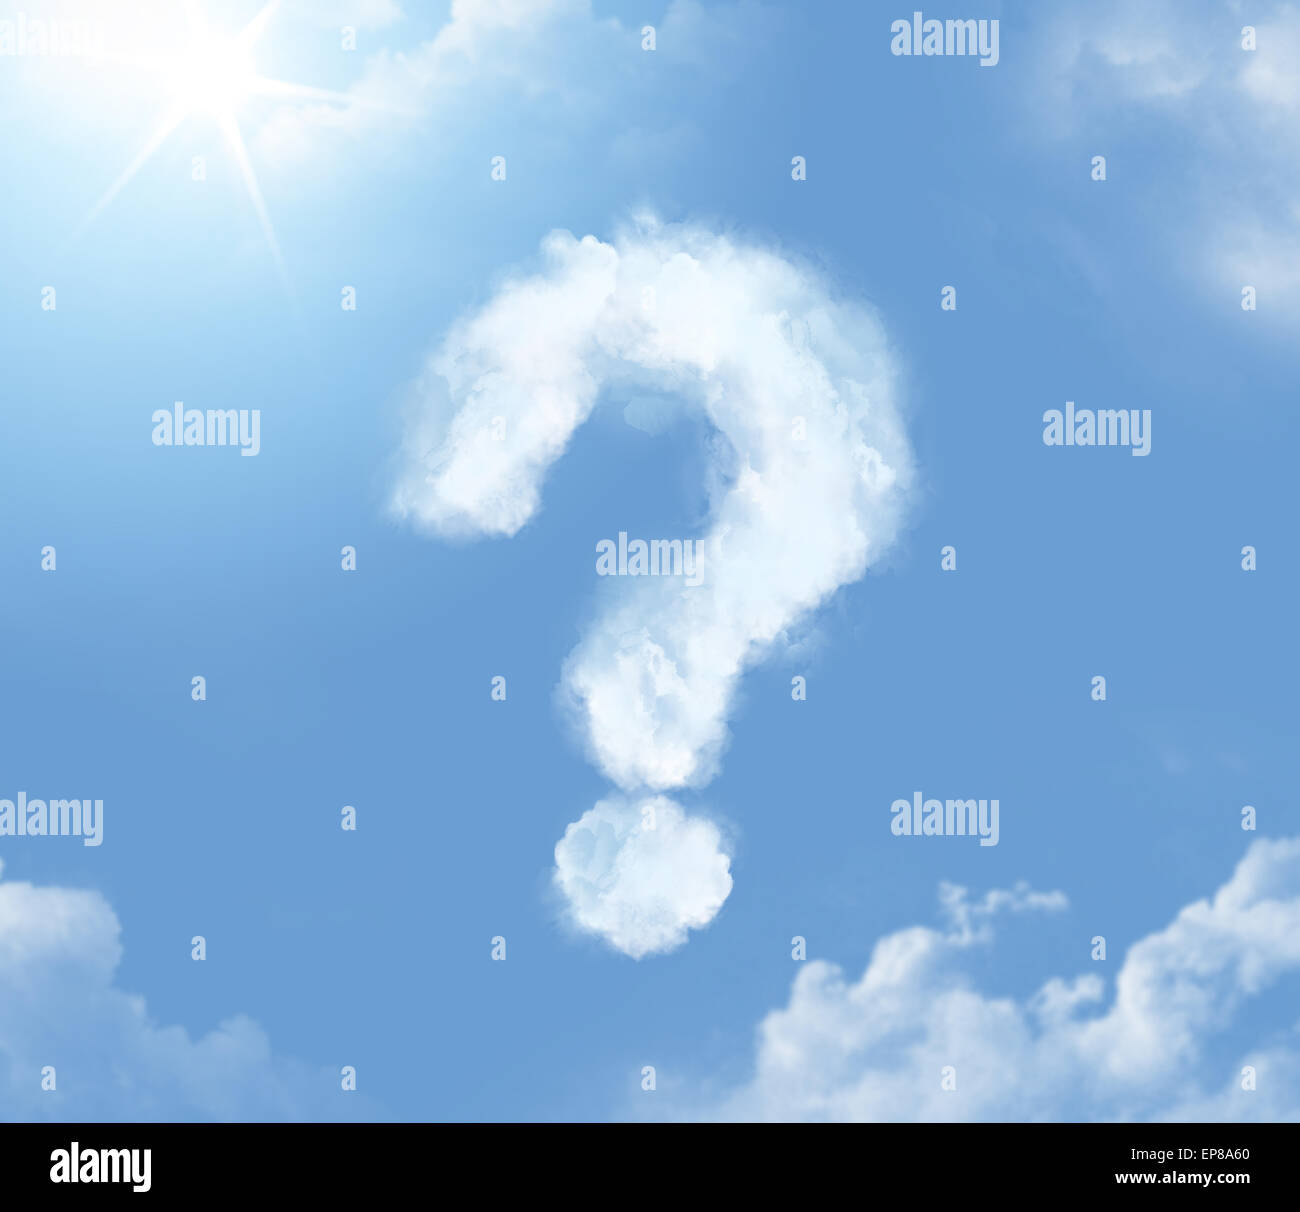 Flossy cloudlet in the form of question mark - Stock Image